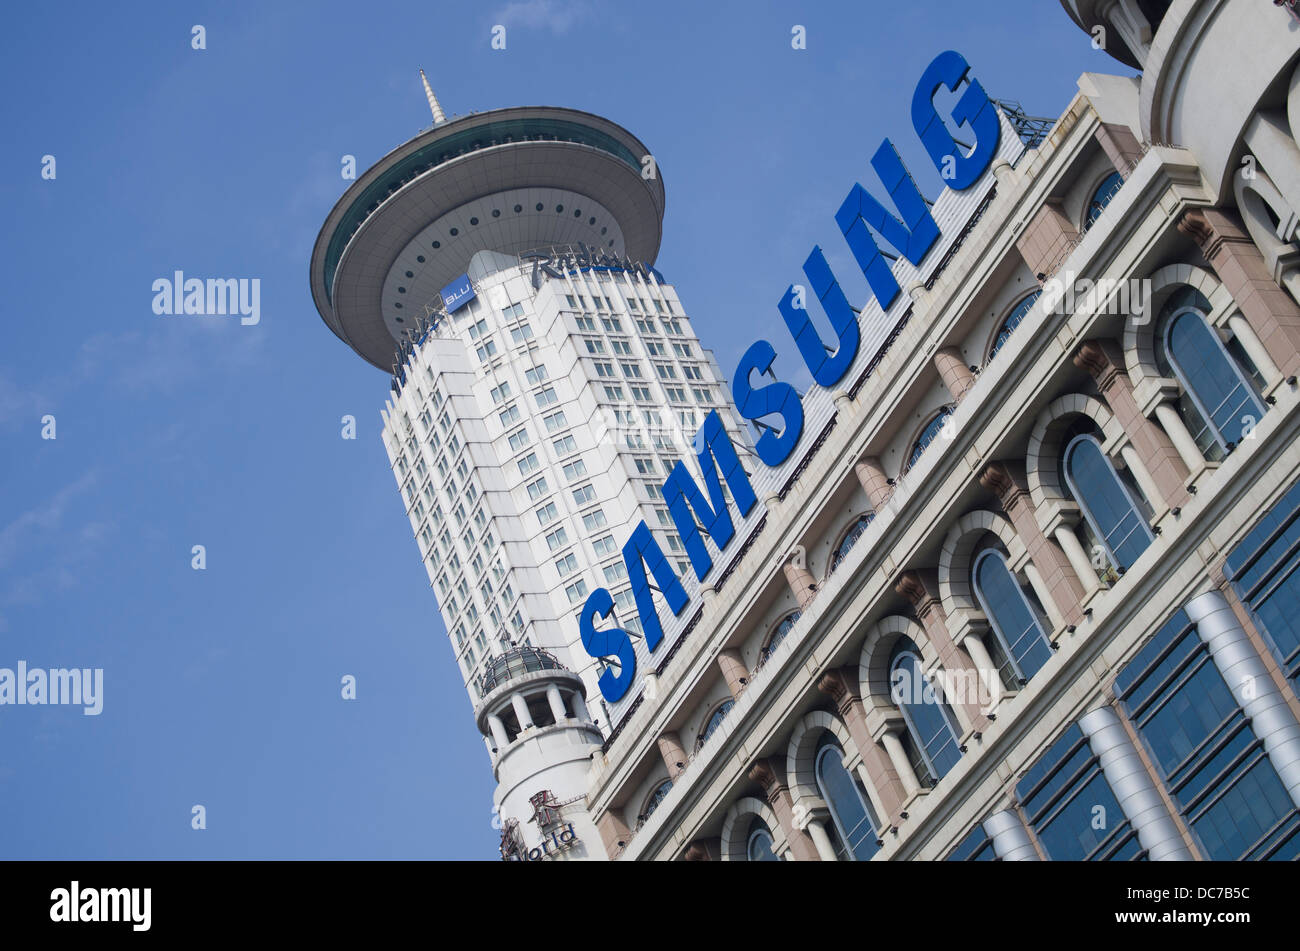 Samsung logo on building in Shanghai, China - Stock Image